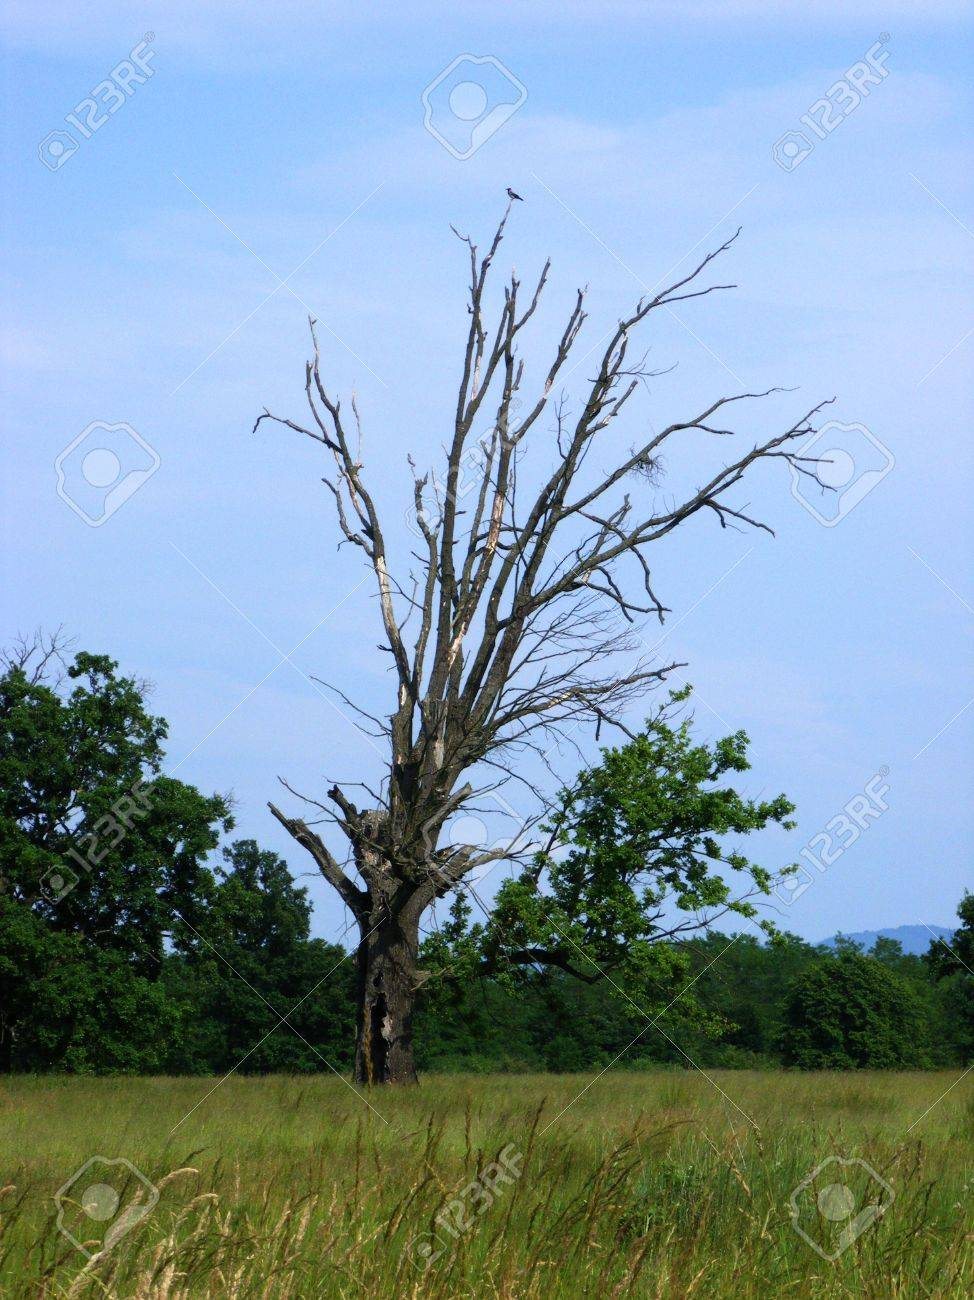 dry death tree with a crow living in its branches Stock Photo - 9741860